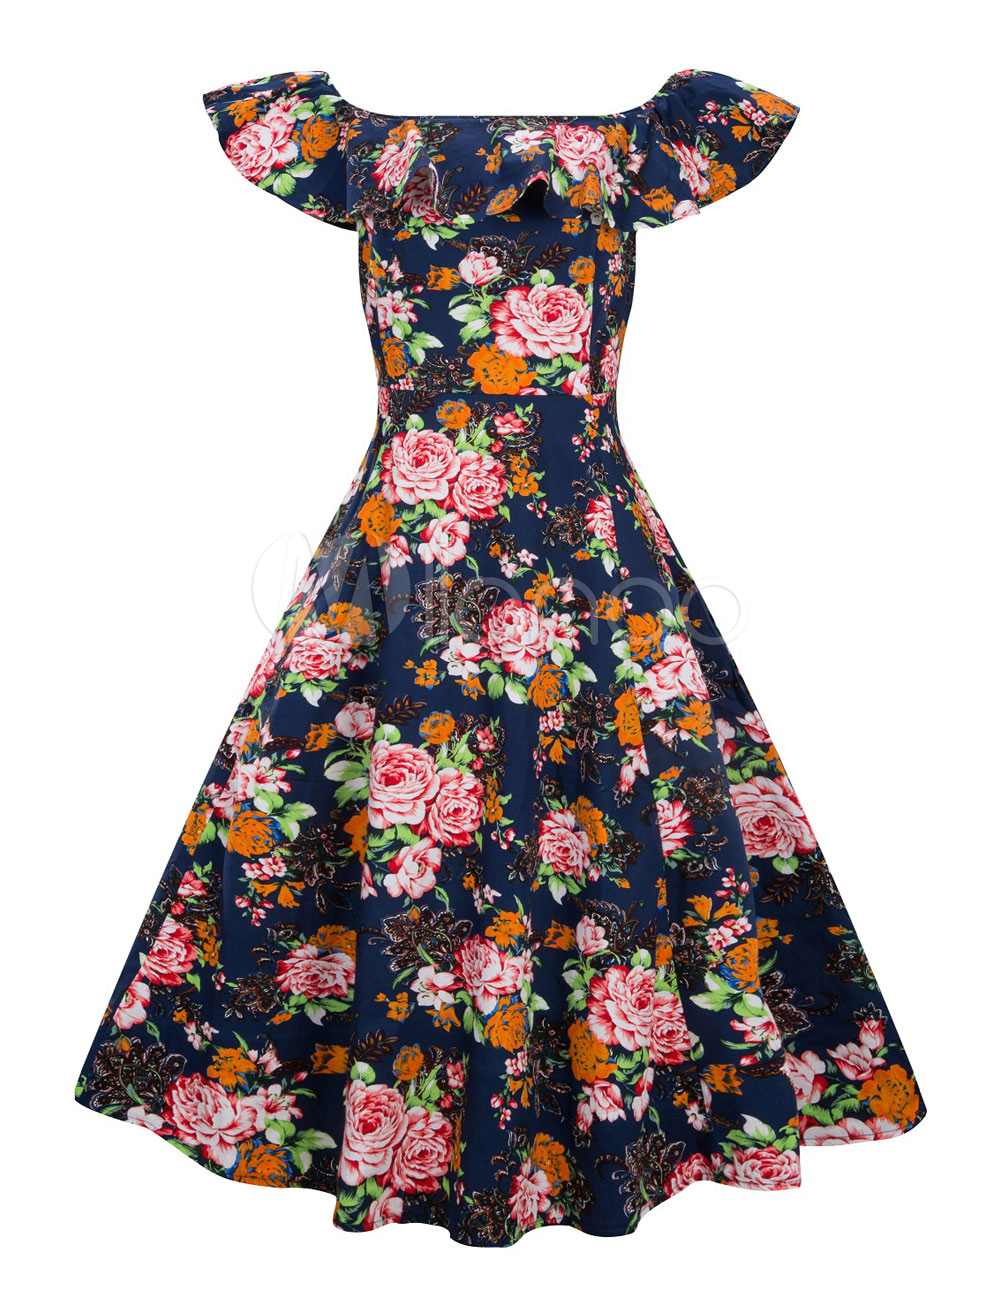 Buy Summer Vintage Dress Short Sleeve 1950s Off The Shoulder Floral Print Retro Swing Dress for $33.24 in Milanoo store